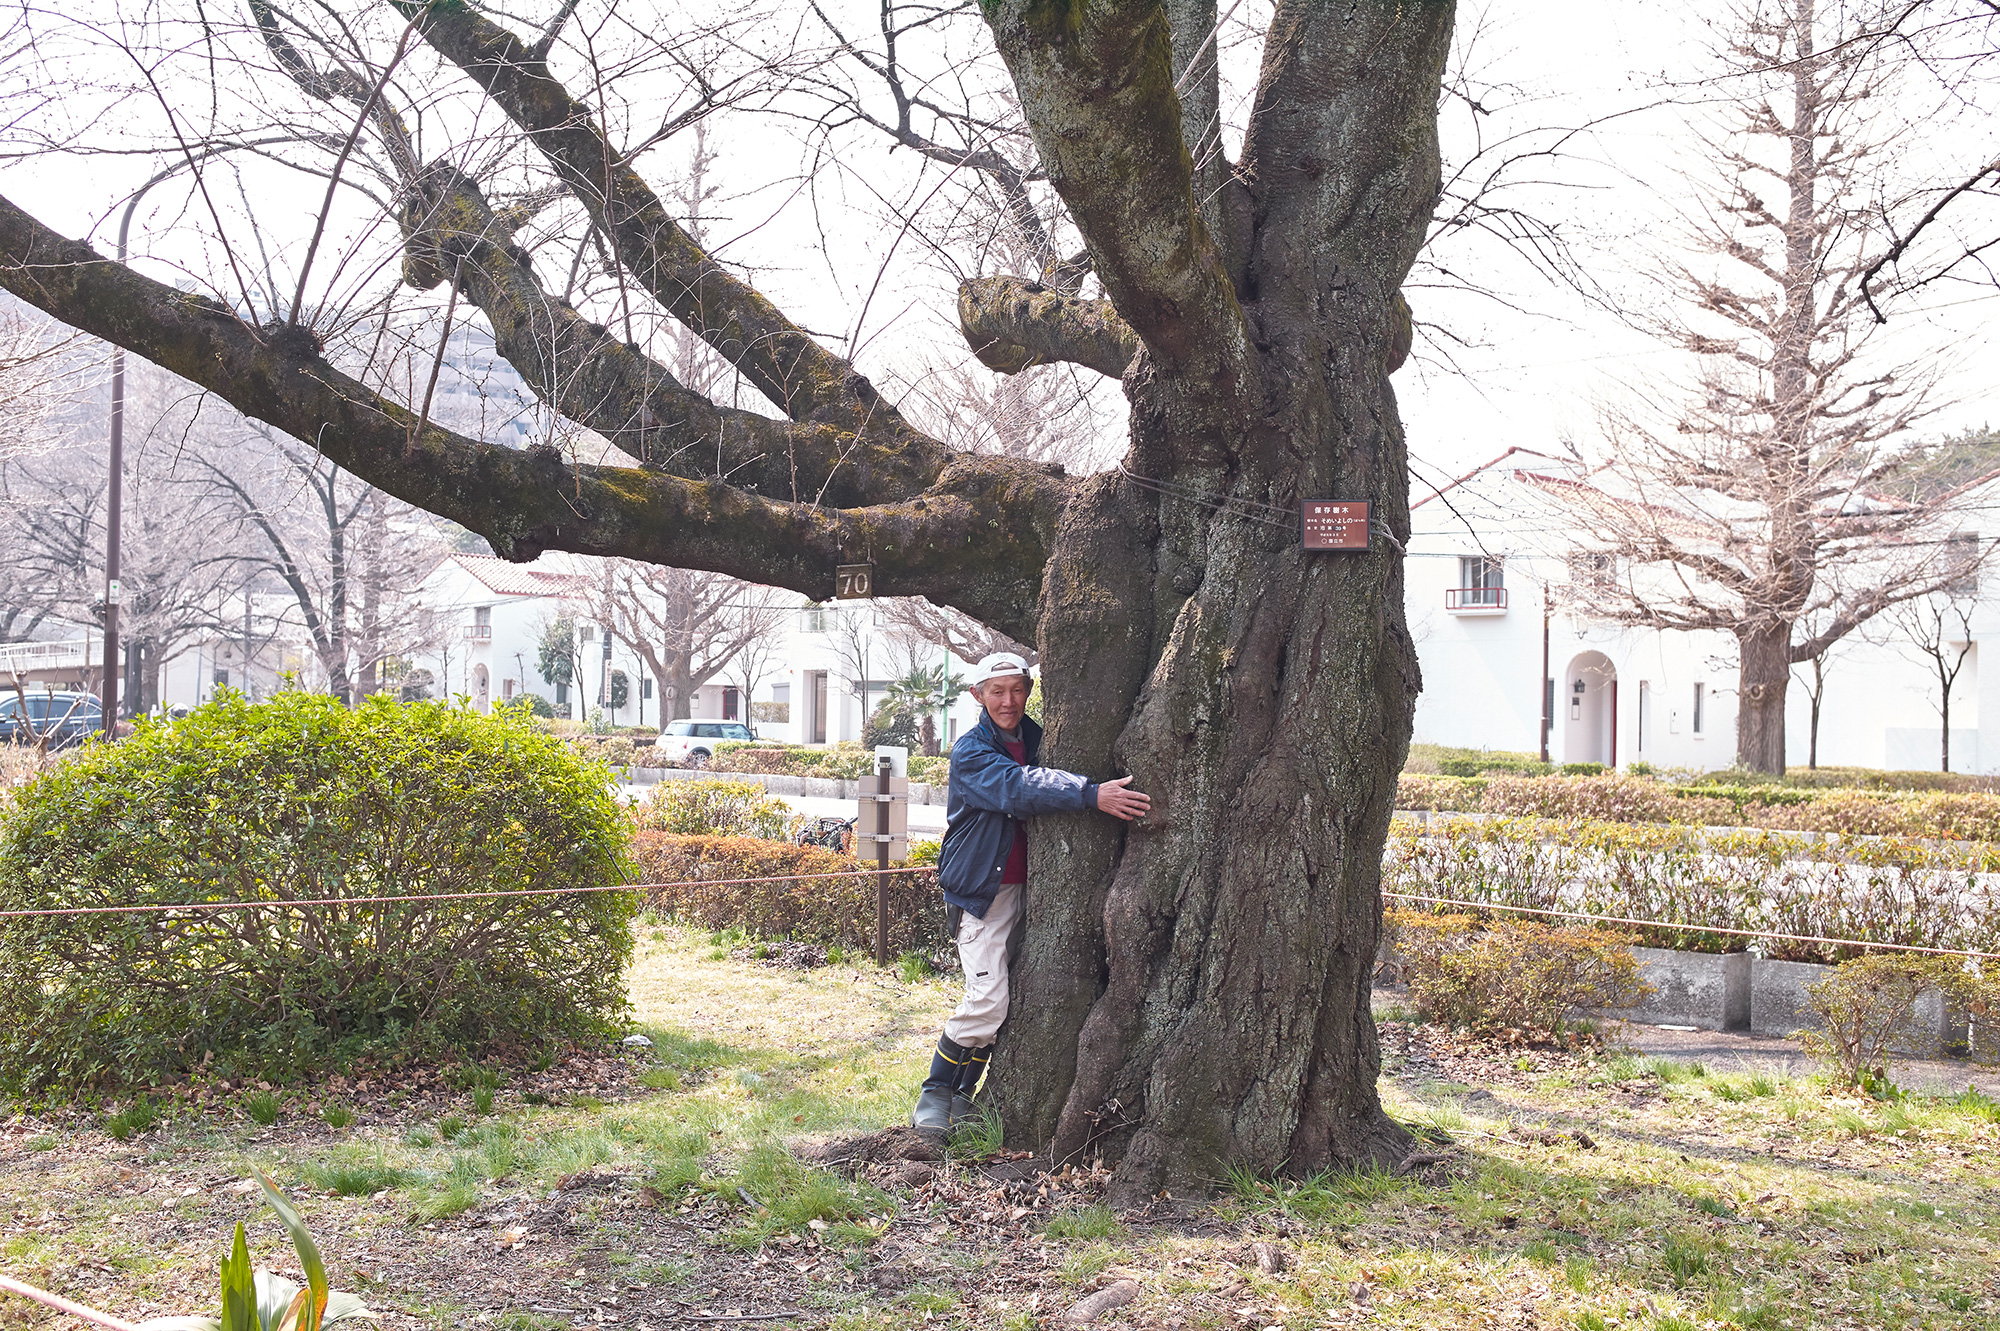 Cherry Blossoms Tree more than 80 Years Old in Kunitachi